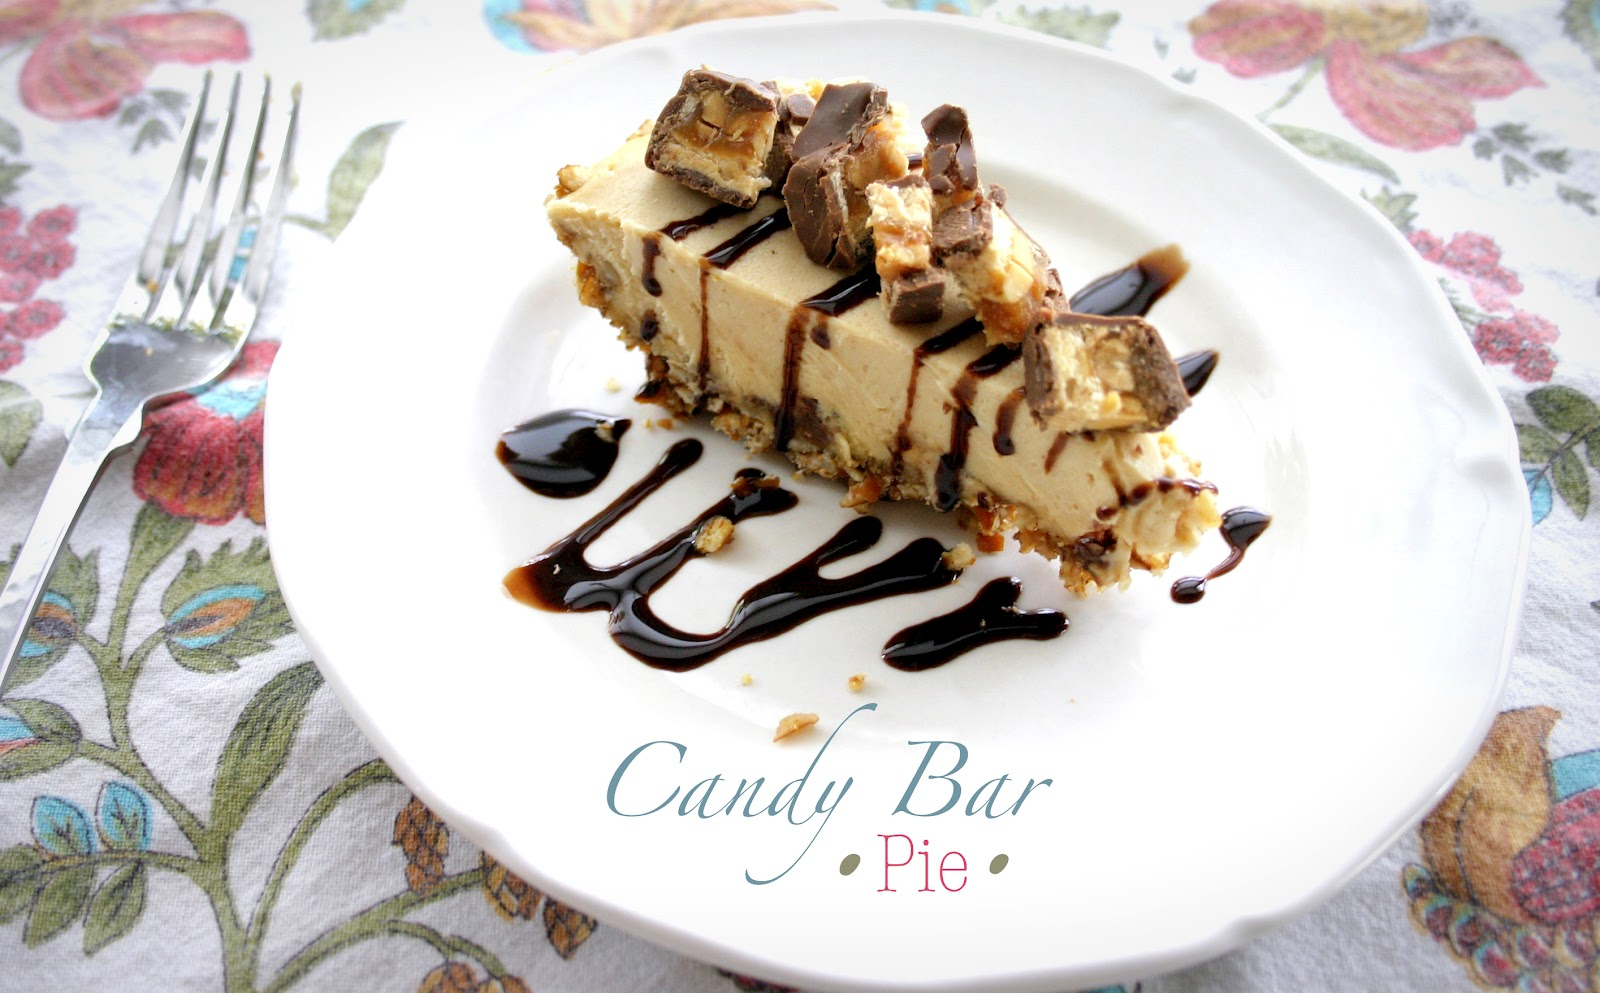 and that Candy Bar Pie that will be posted next week.